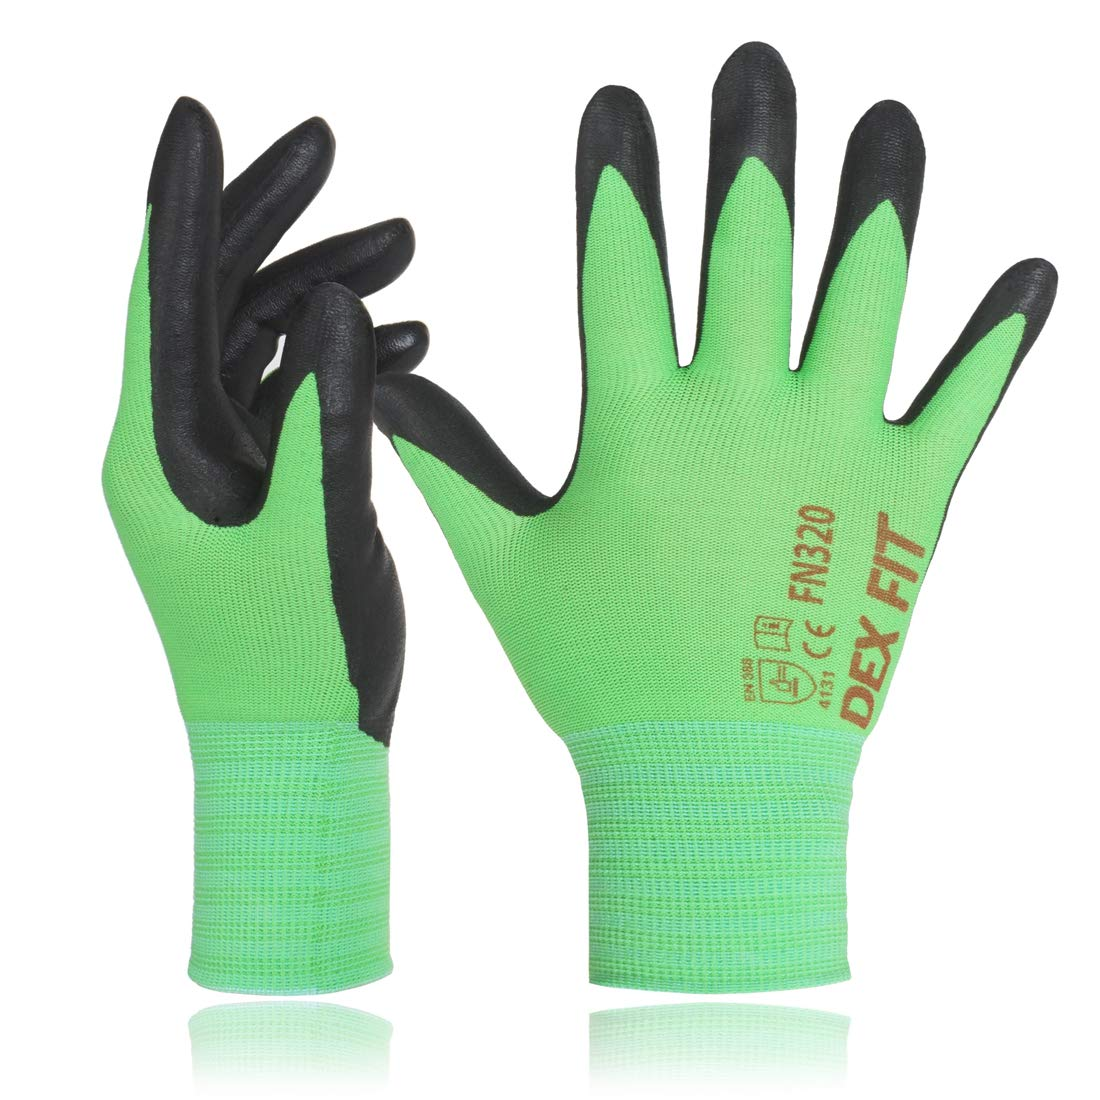 DEX FIT Gardening Work Gloves FN320, 3D Comfort Stretch Fit, Power Grip, Thin Lightweight, Durable Foam Nitrile Coating, Machine Washable, Green X-Small 3 Pairs Pack